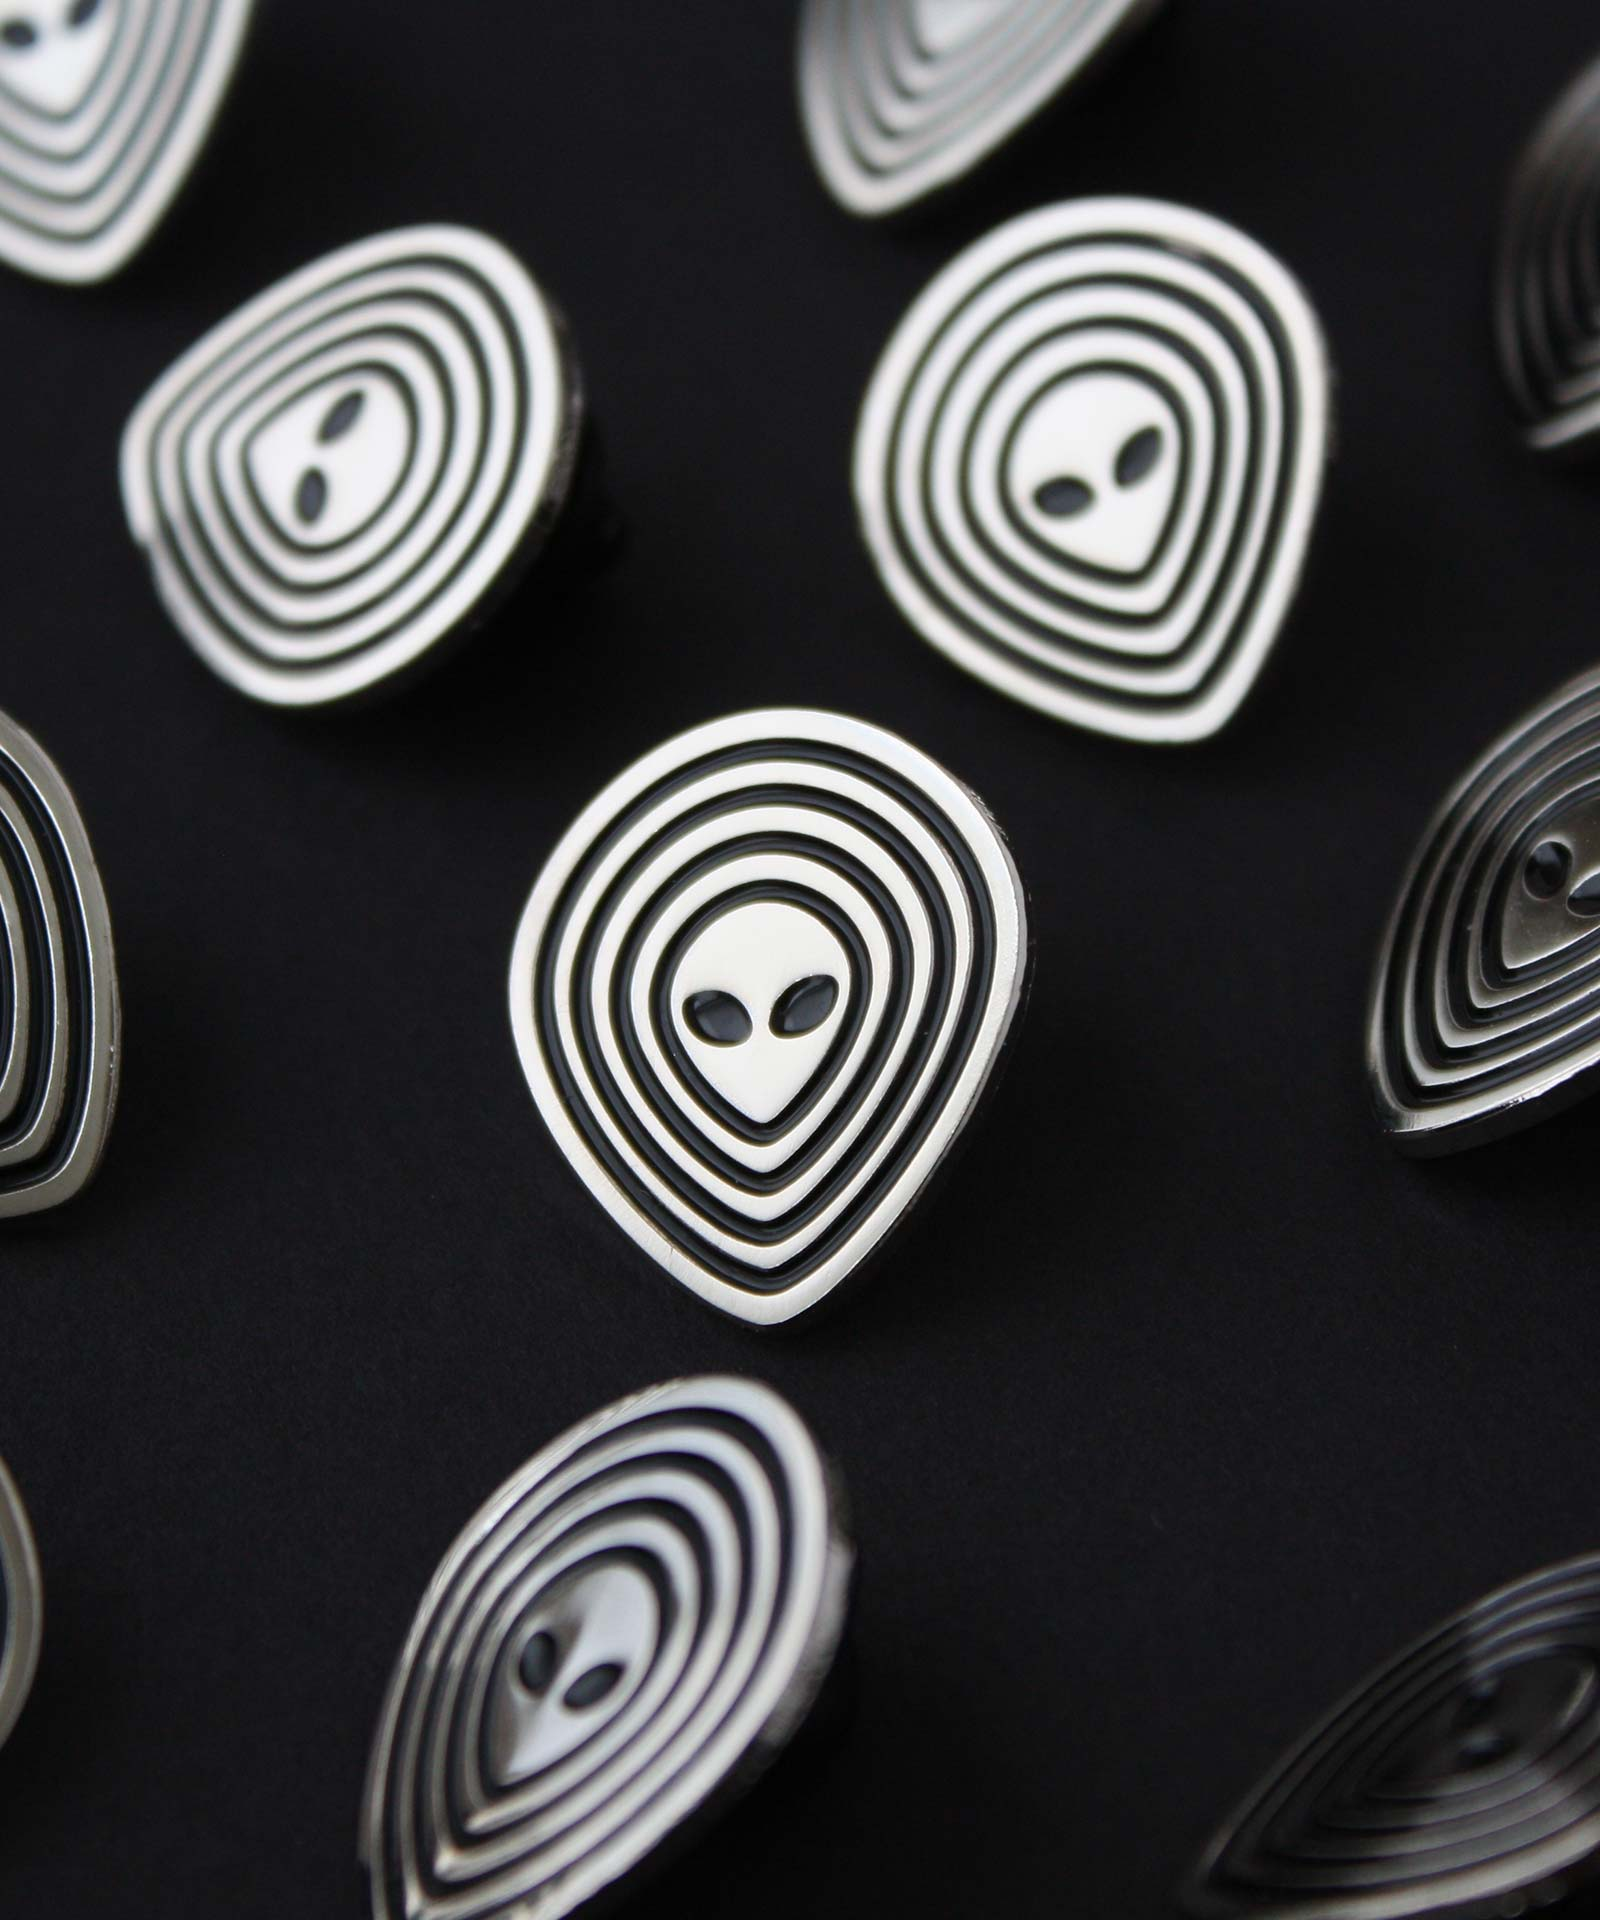 Alien and UFO inspired lapel pins